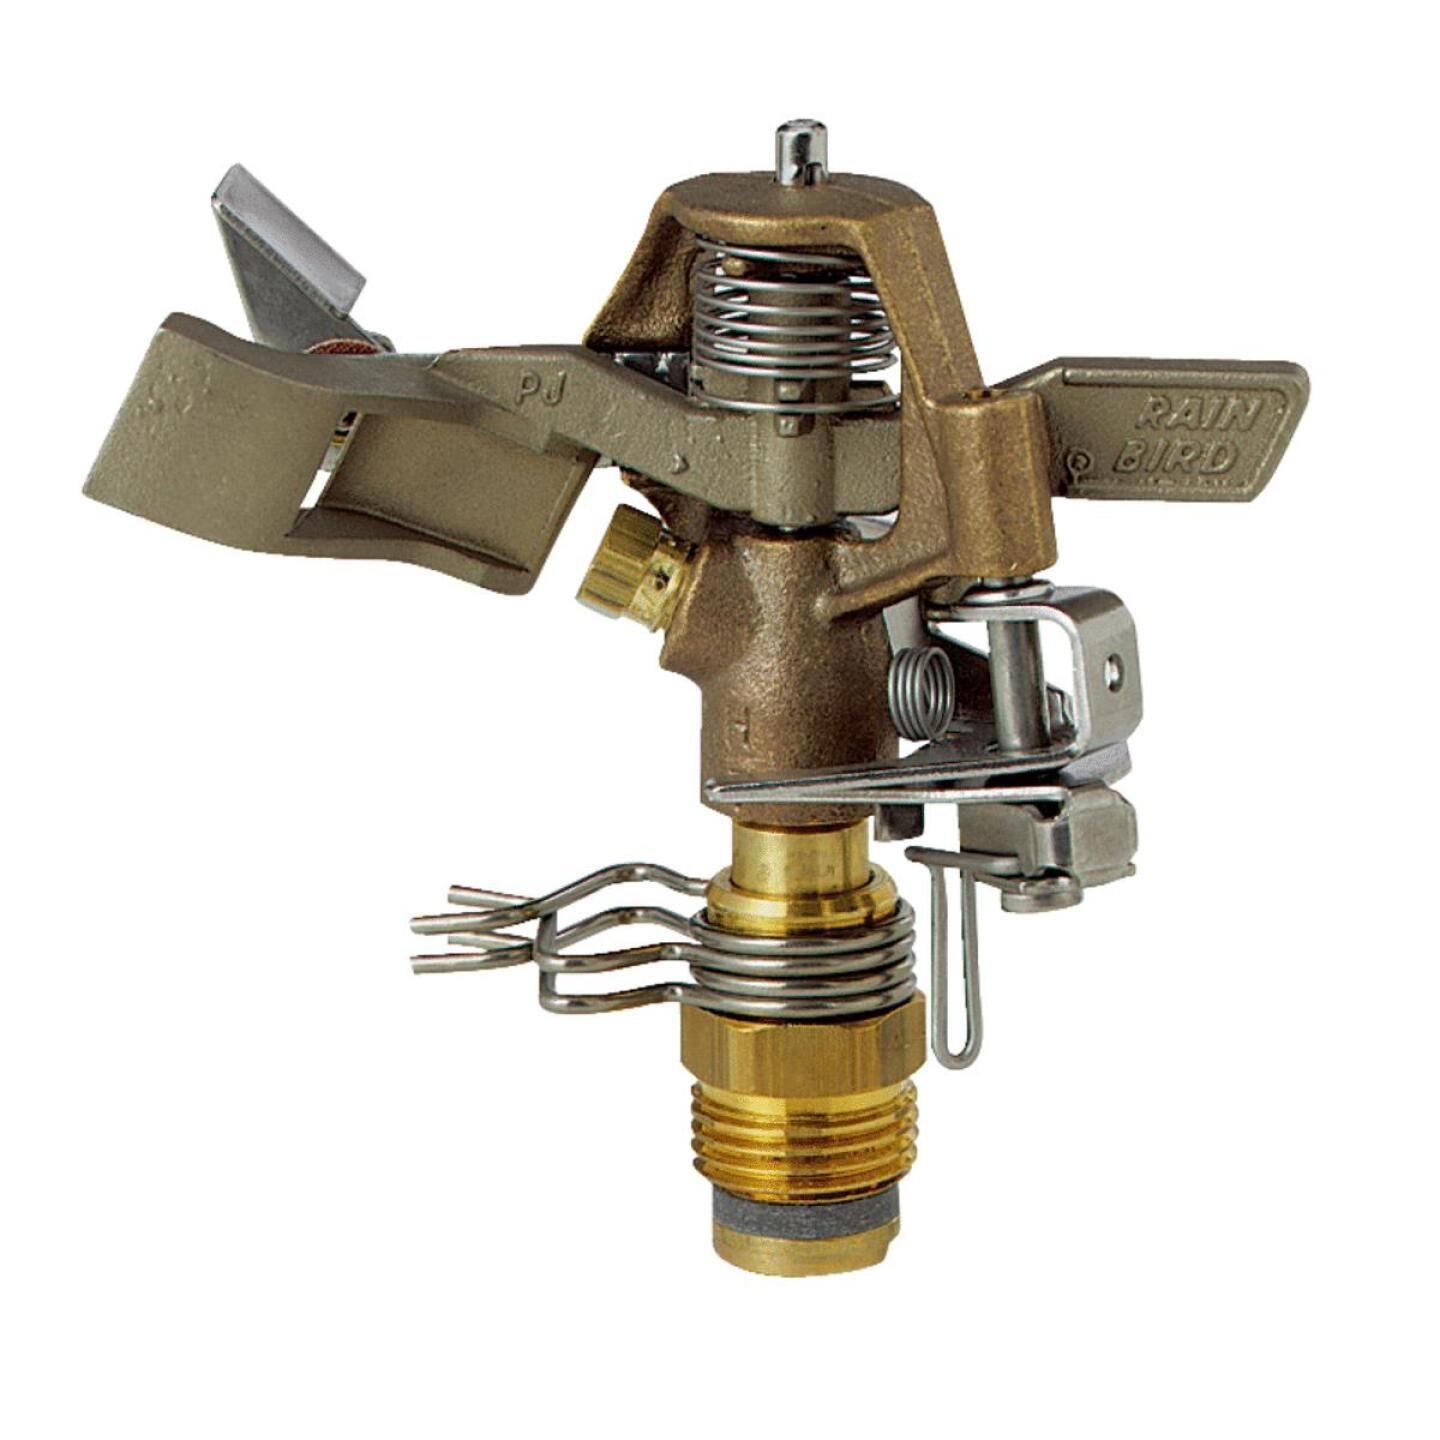 Rain Bird Brass 20 Ft. to 41 Ft. Dia. Riser Mounted Impact Sprinkler Image 1